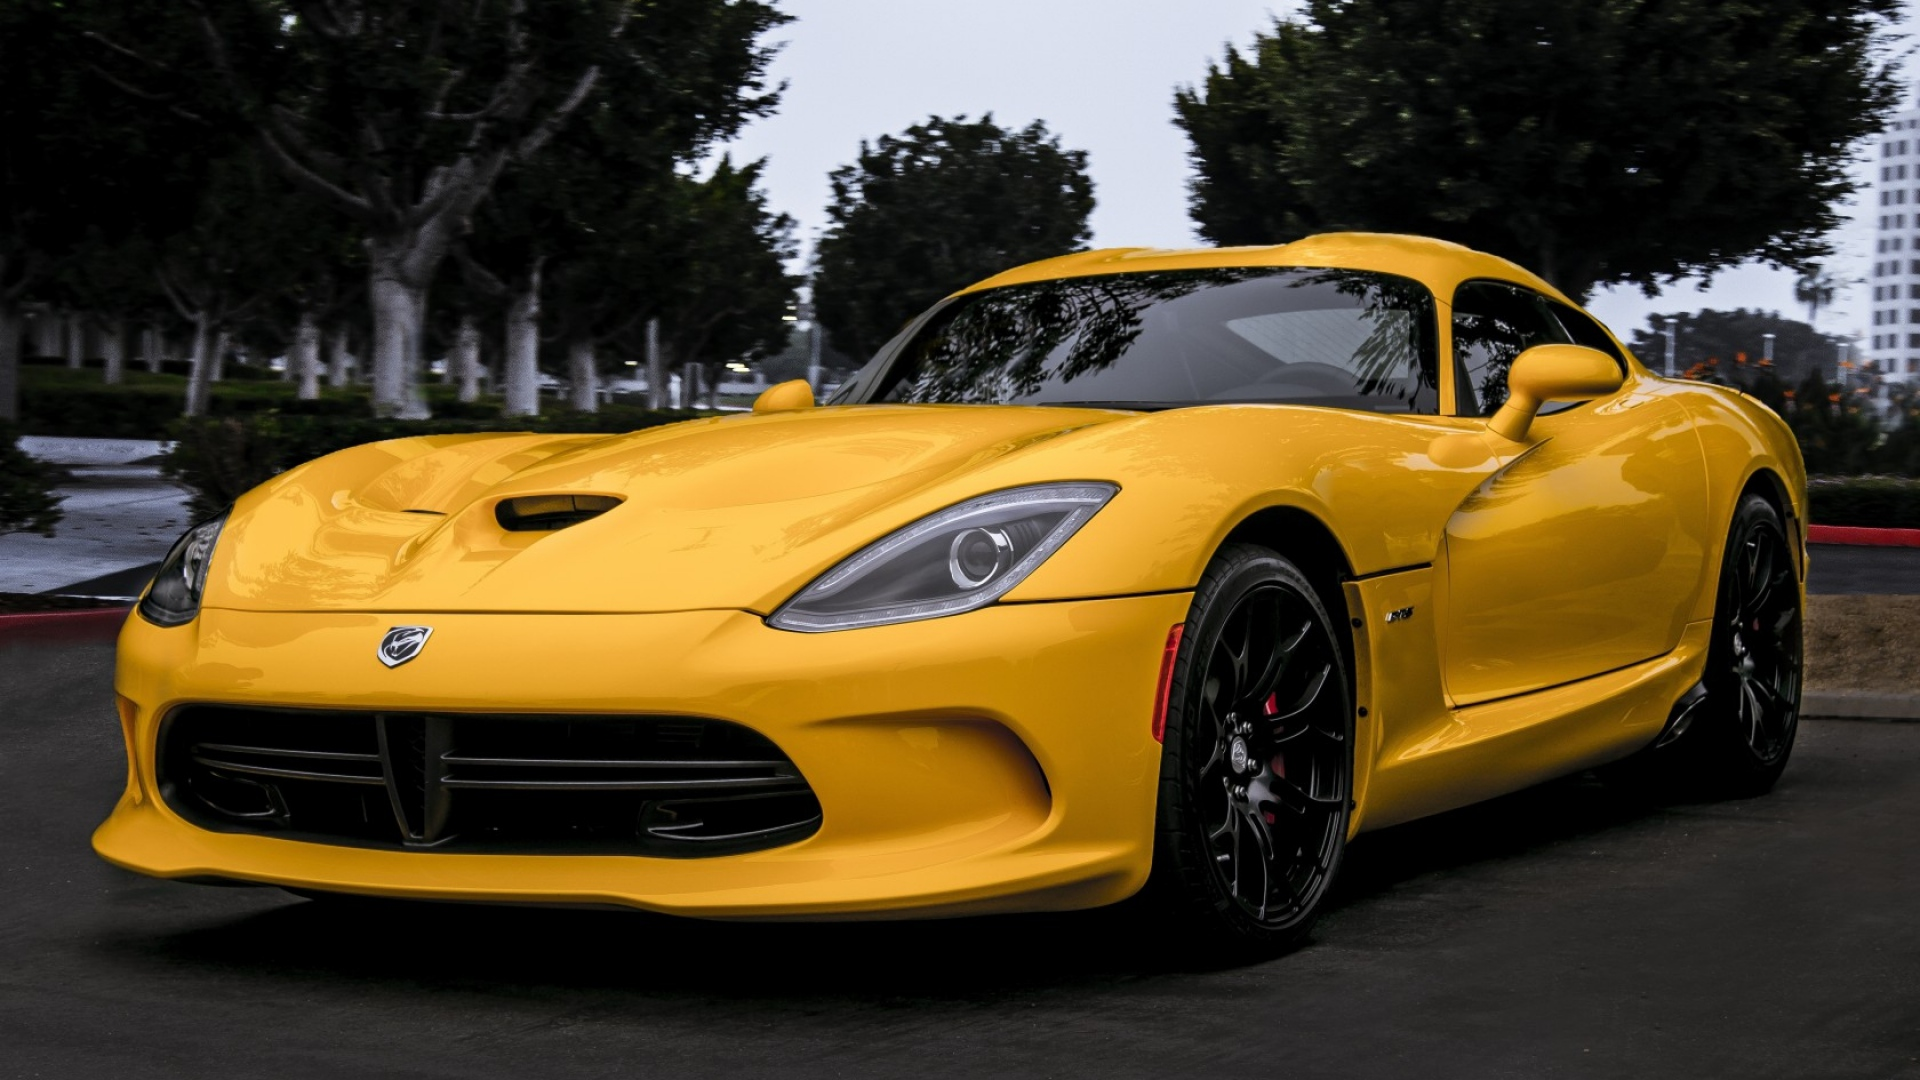 Download Wallpaper 1920x1080 dodge, viper, yellow, front view, trees